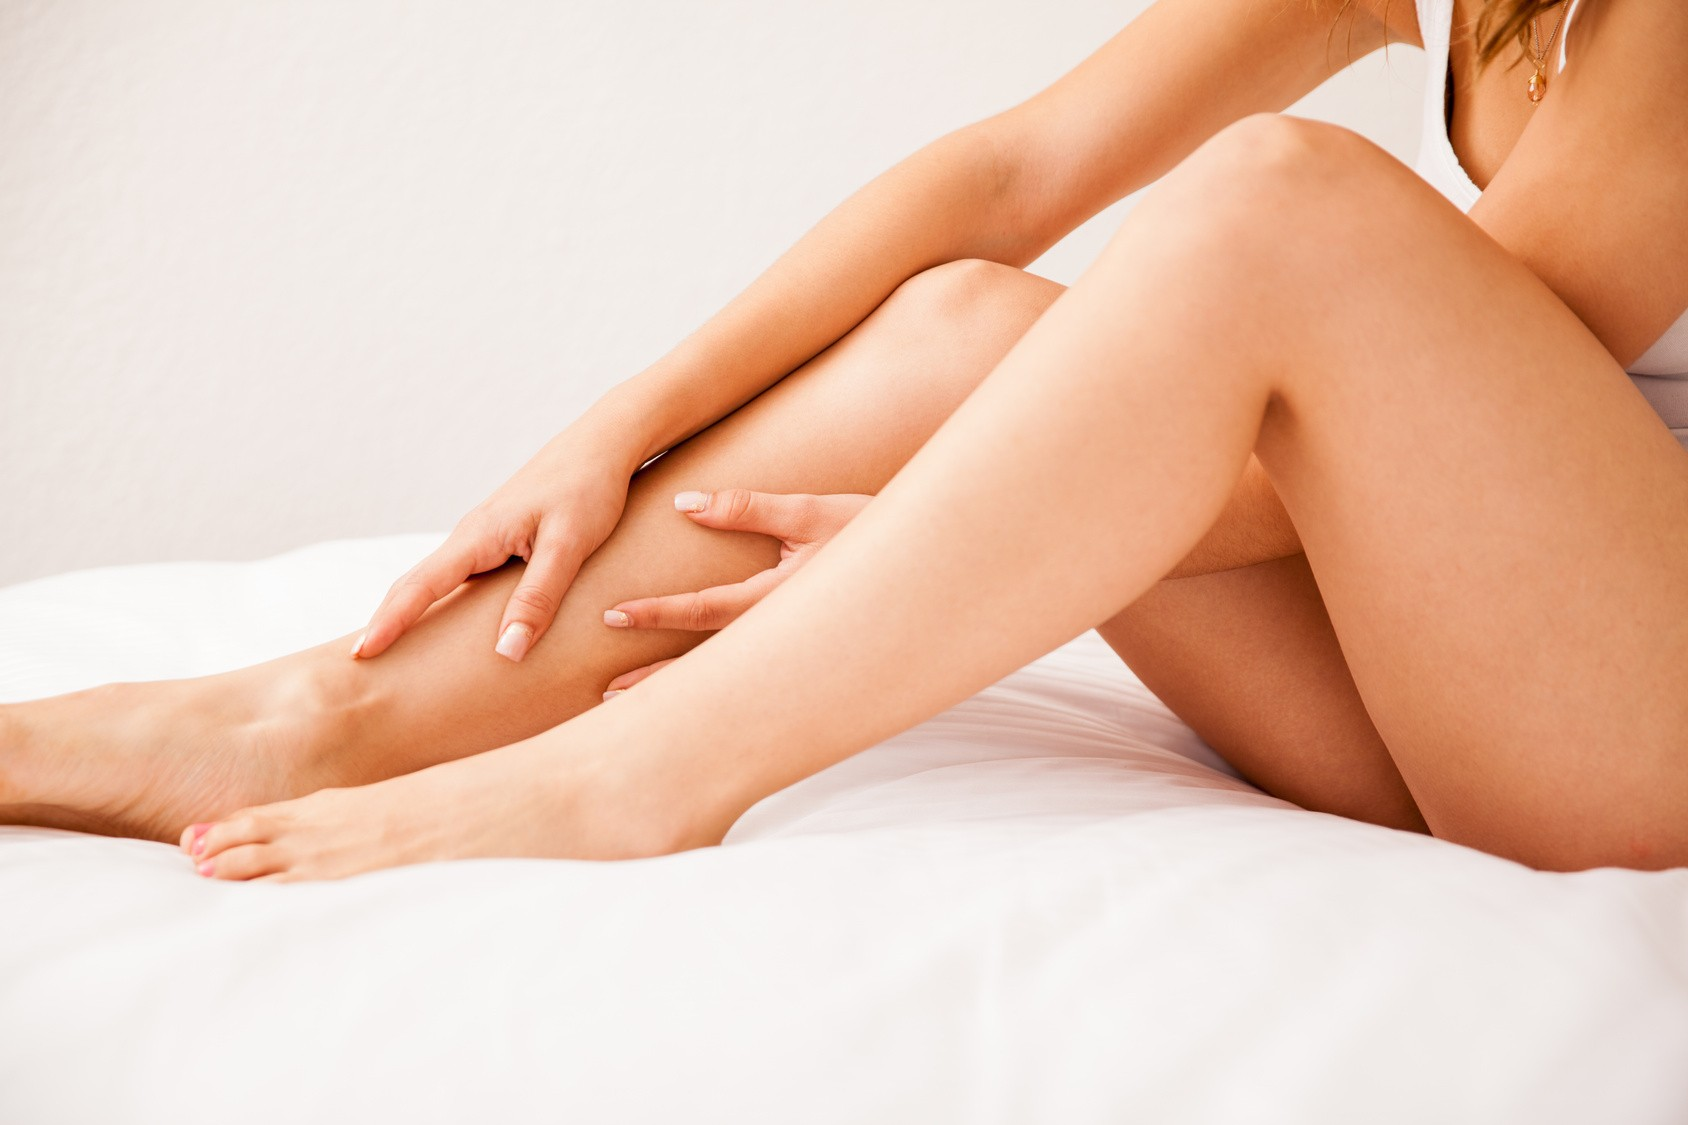 laser hair removal for smooth hair-free legs that last for weeks